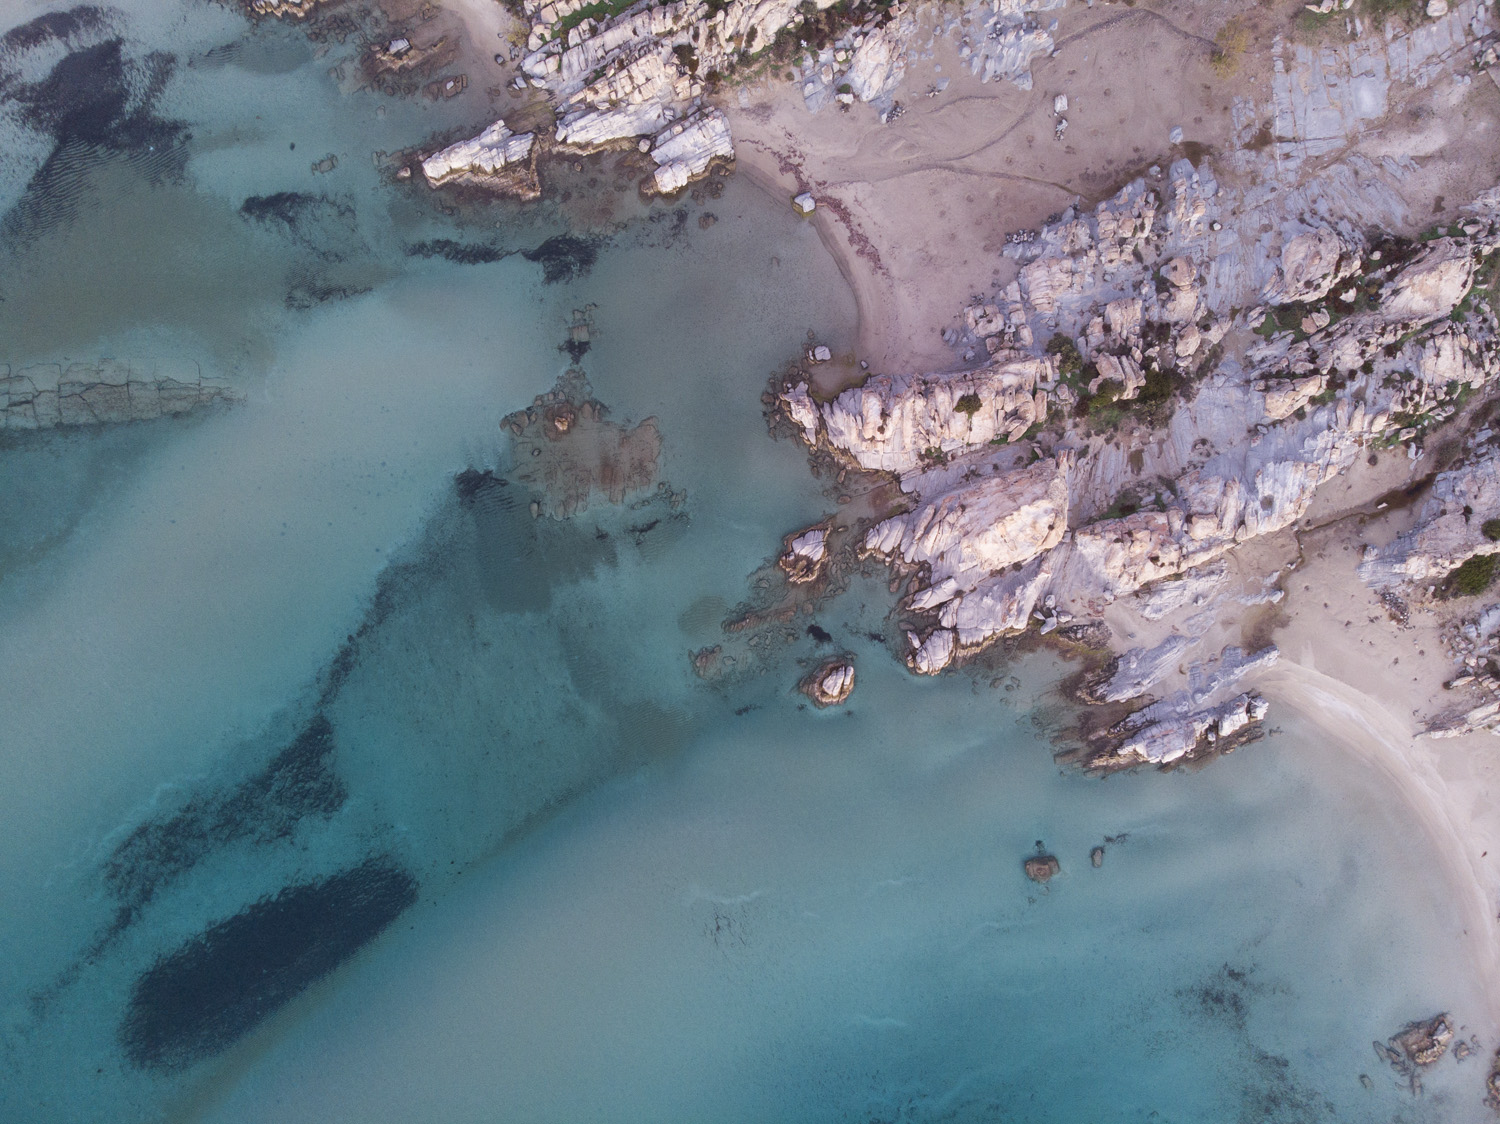 Steafnos Metaxas Photography Kolympithres drone 2.jpg